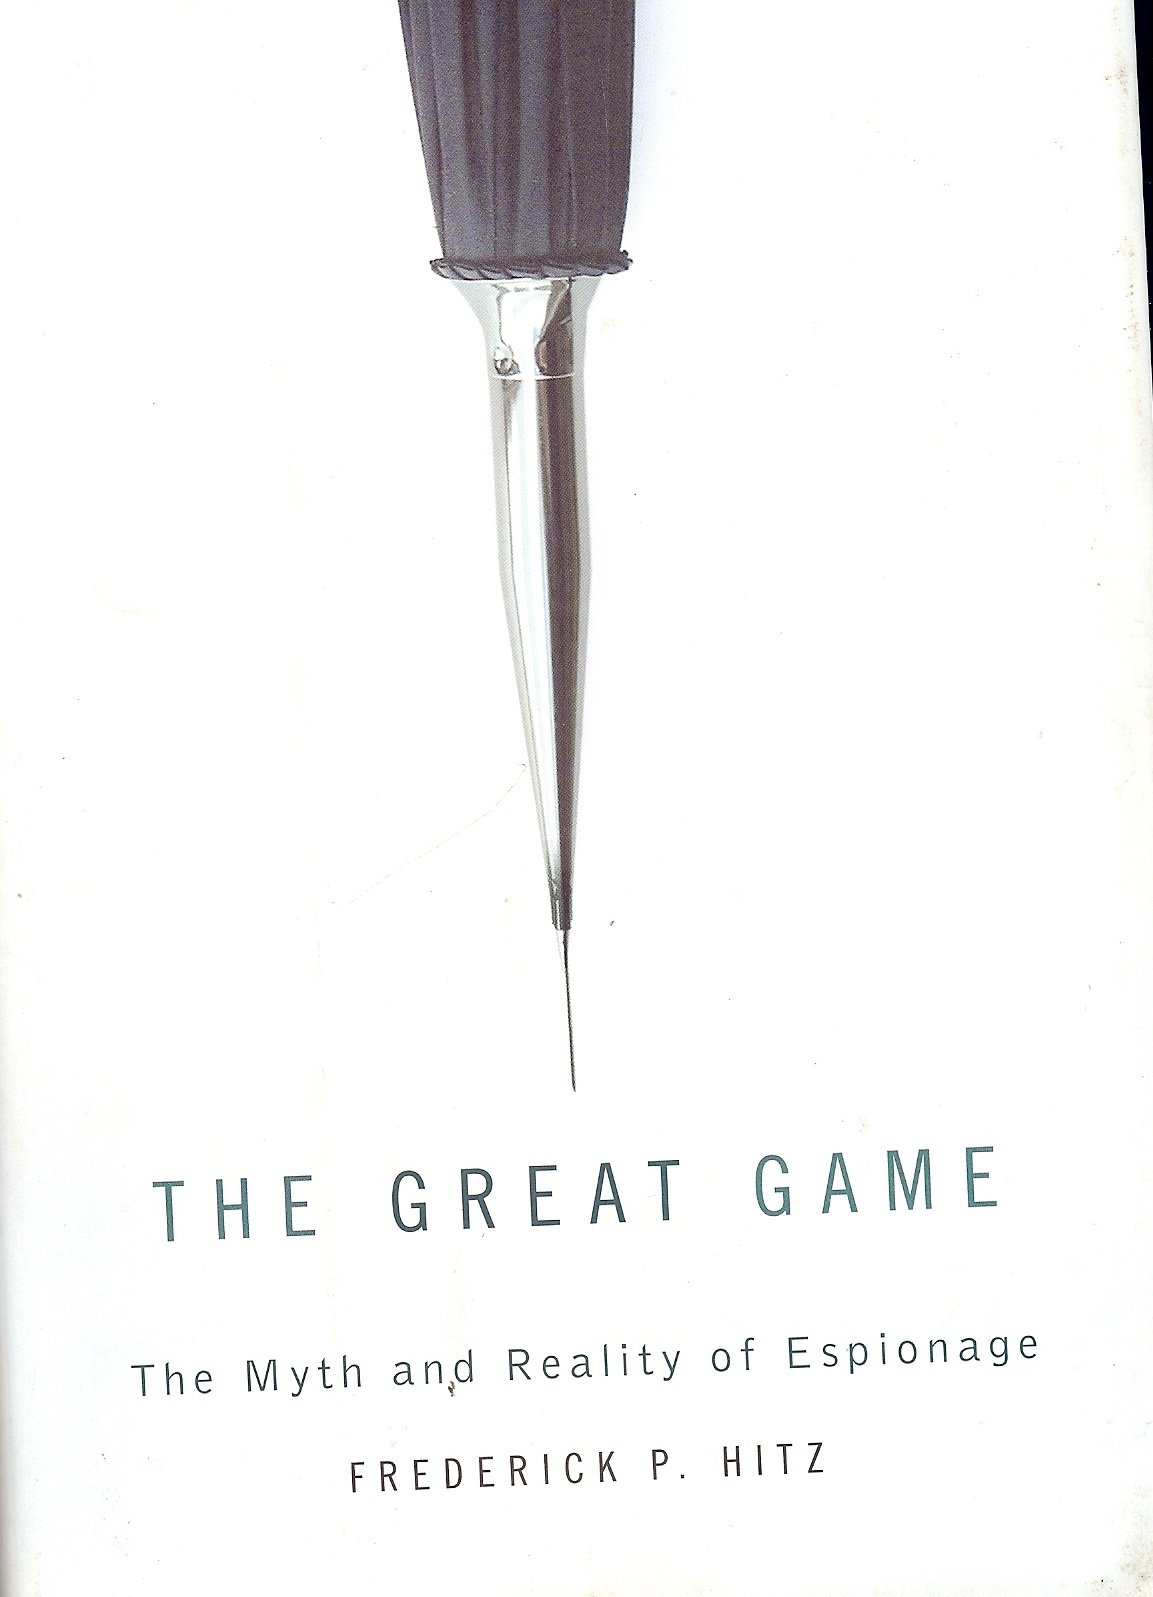 The Great Game: The Myths and Reality of Espionage